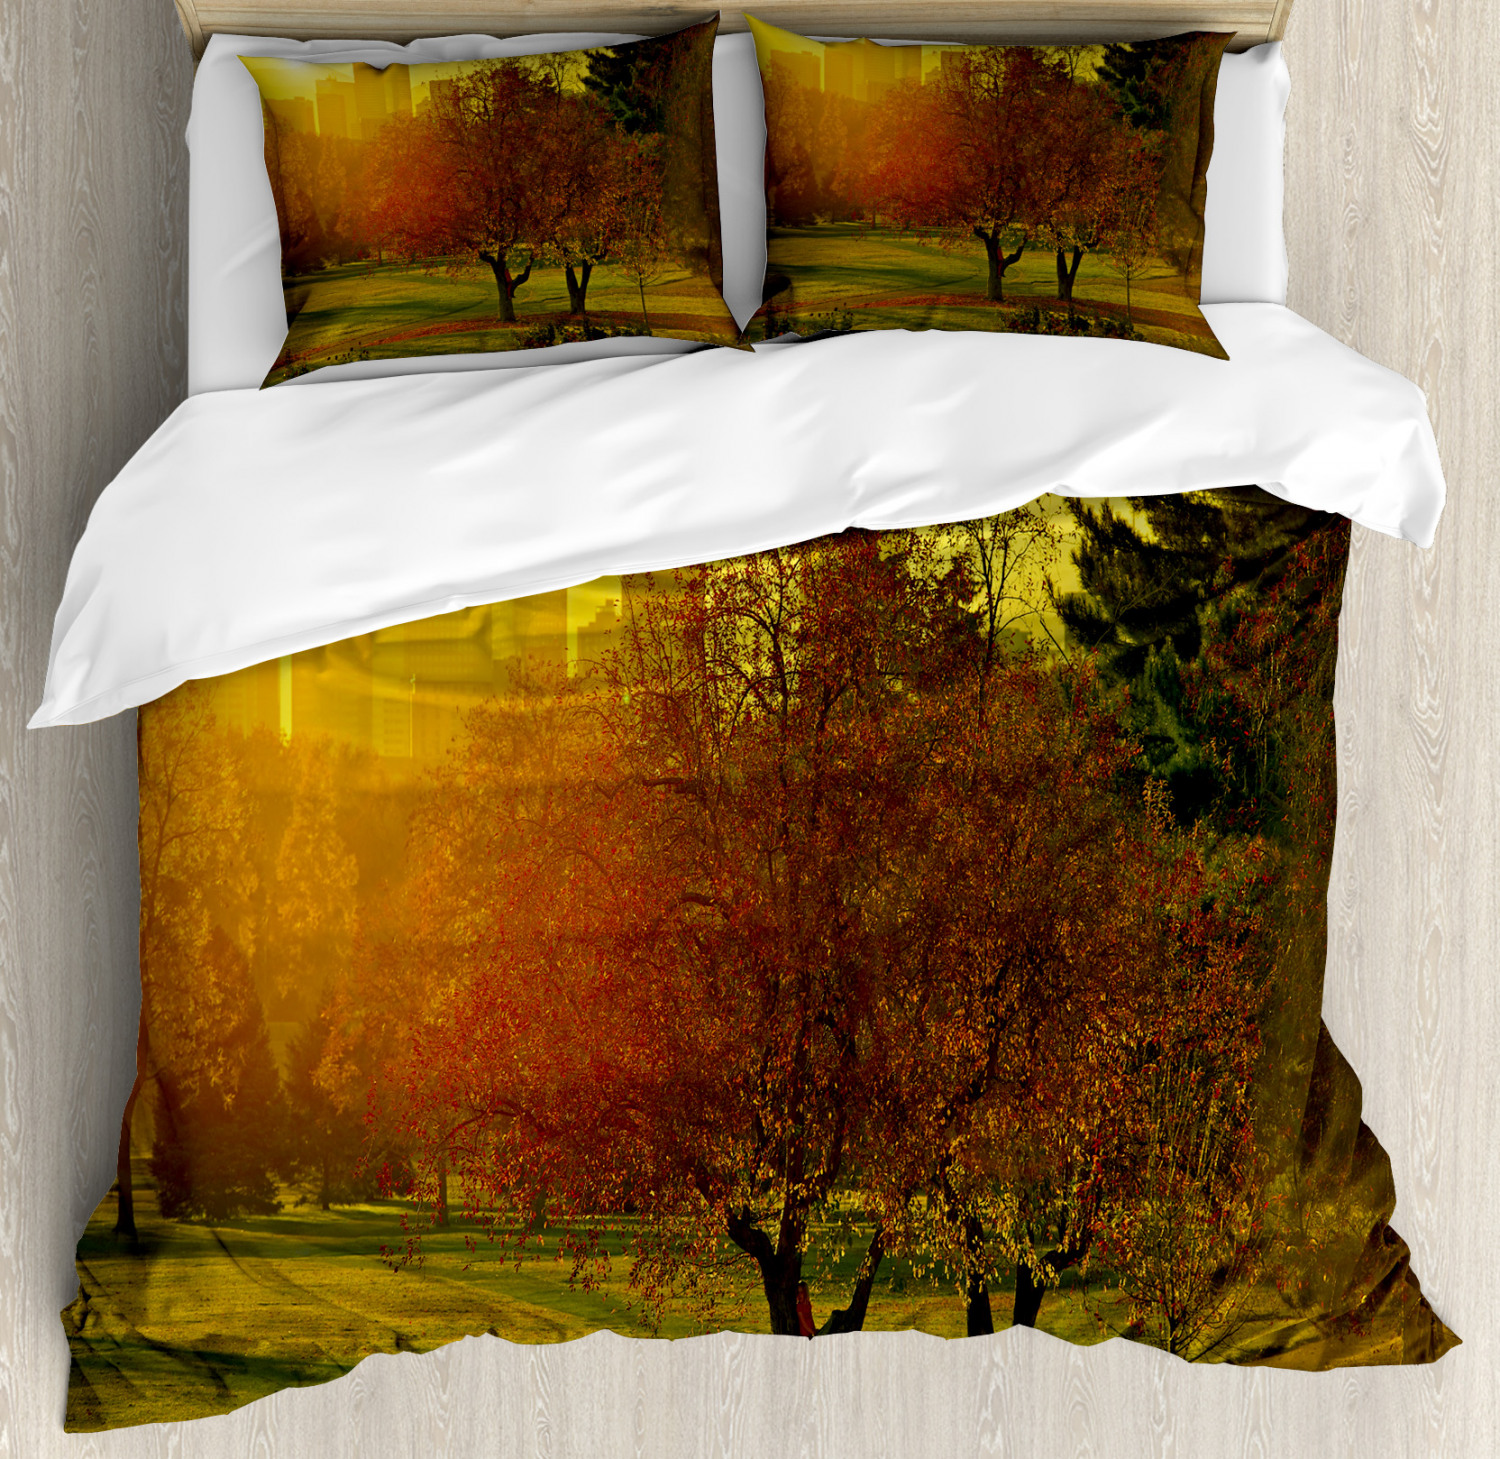 Nature Duvet Cover Set with Pillow Shams Sunset over City Park Print